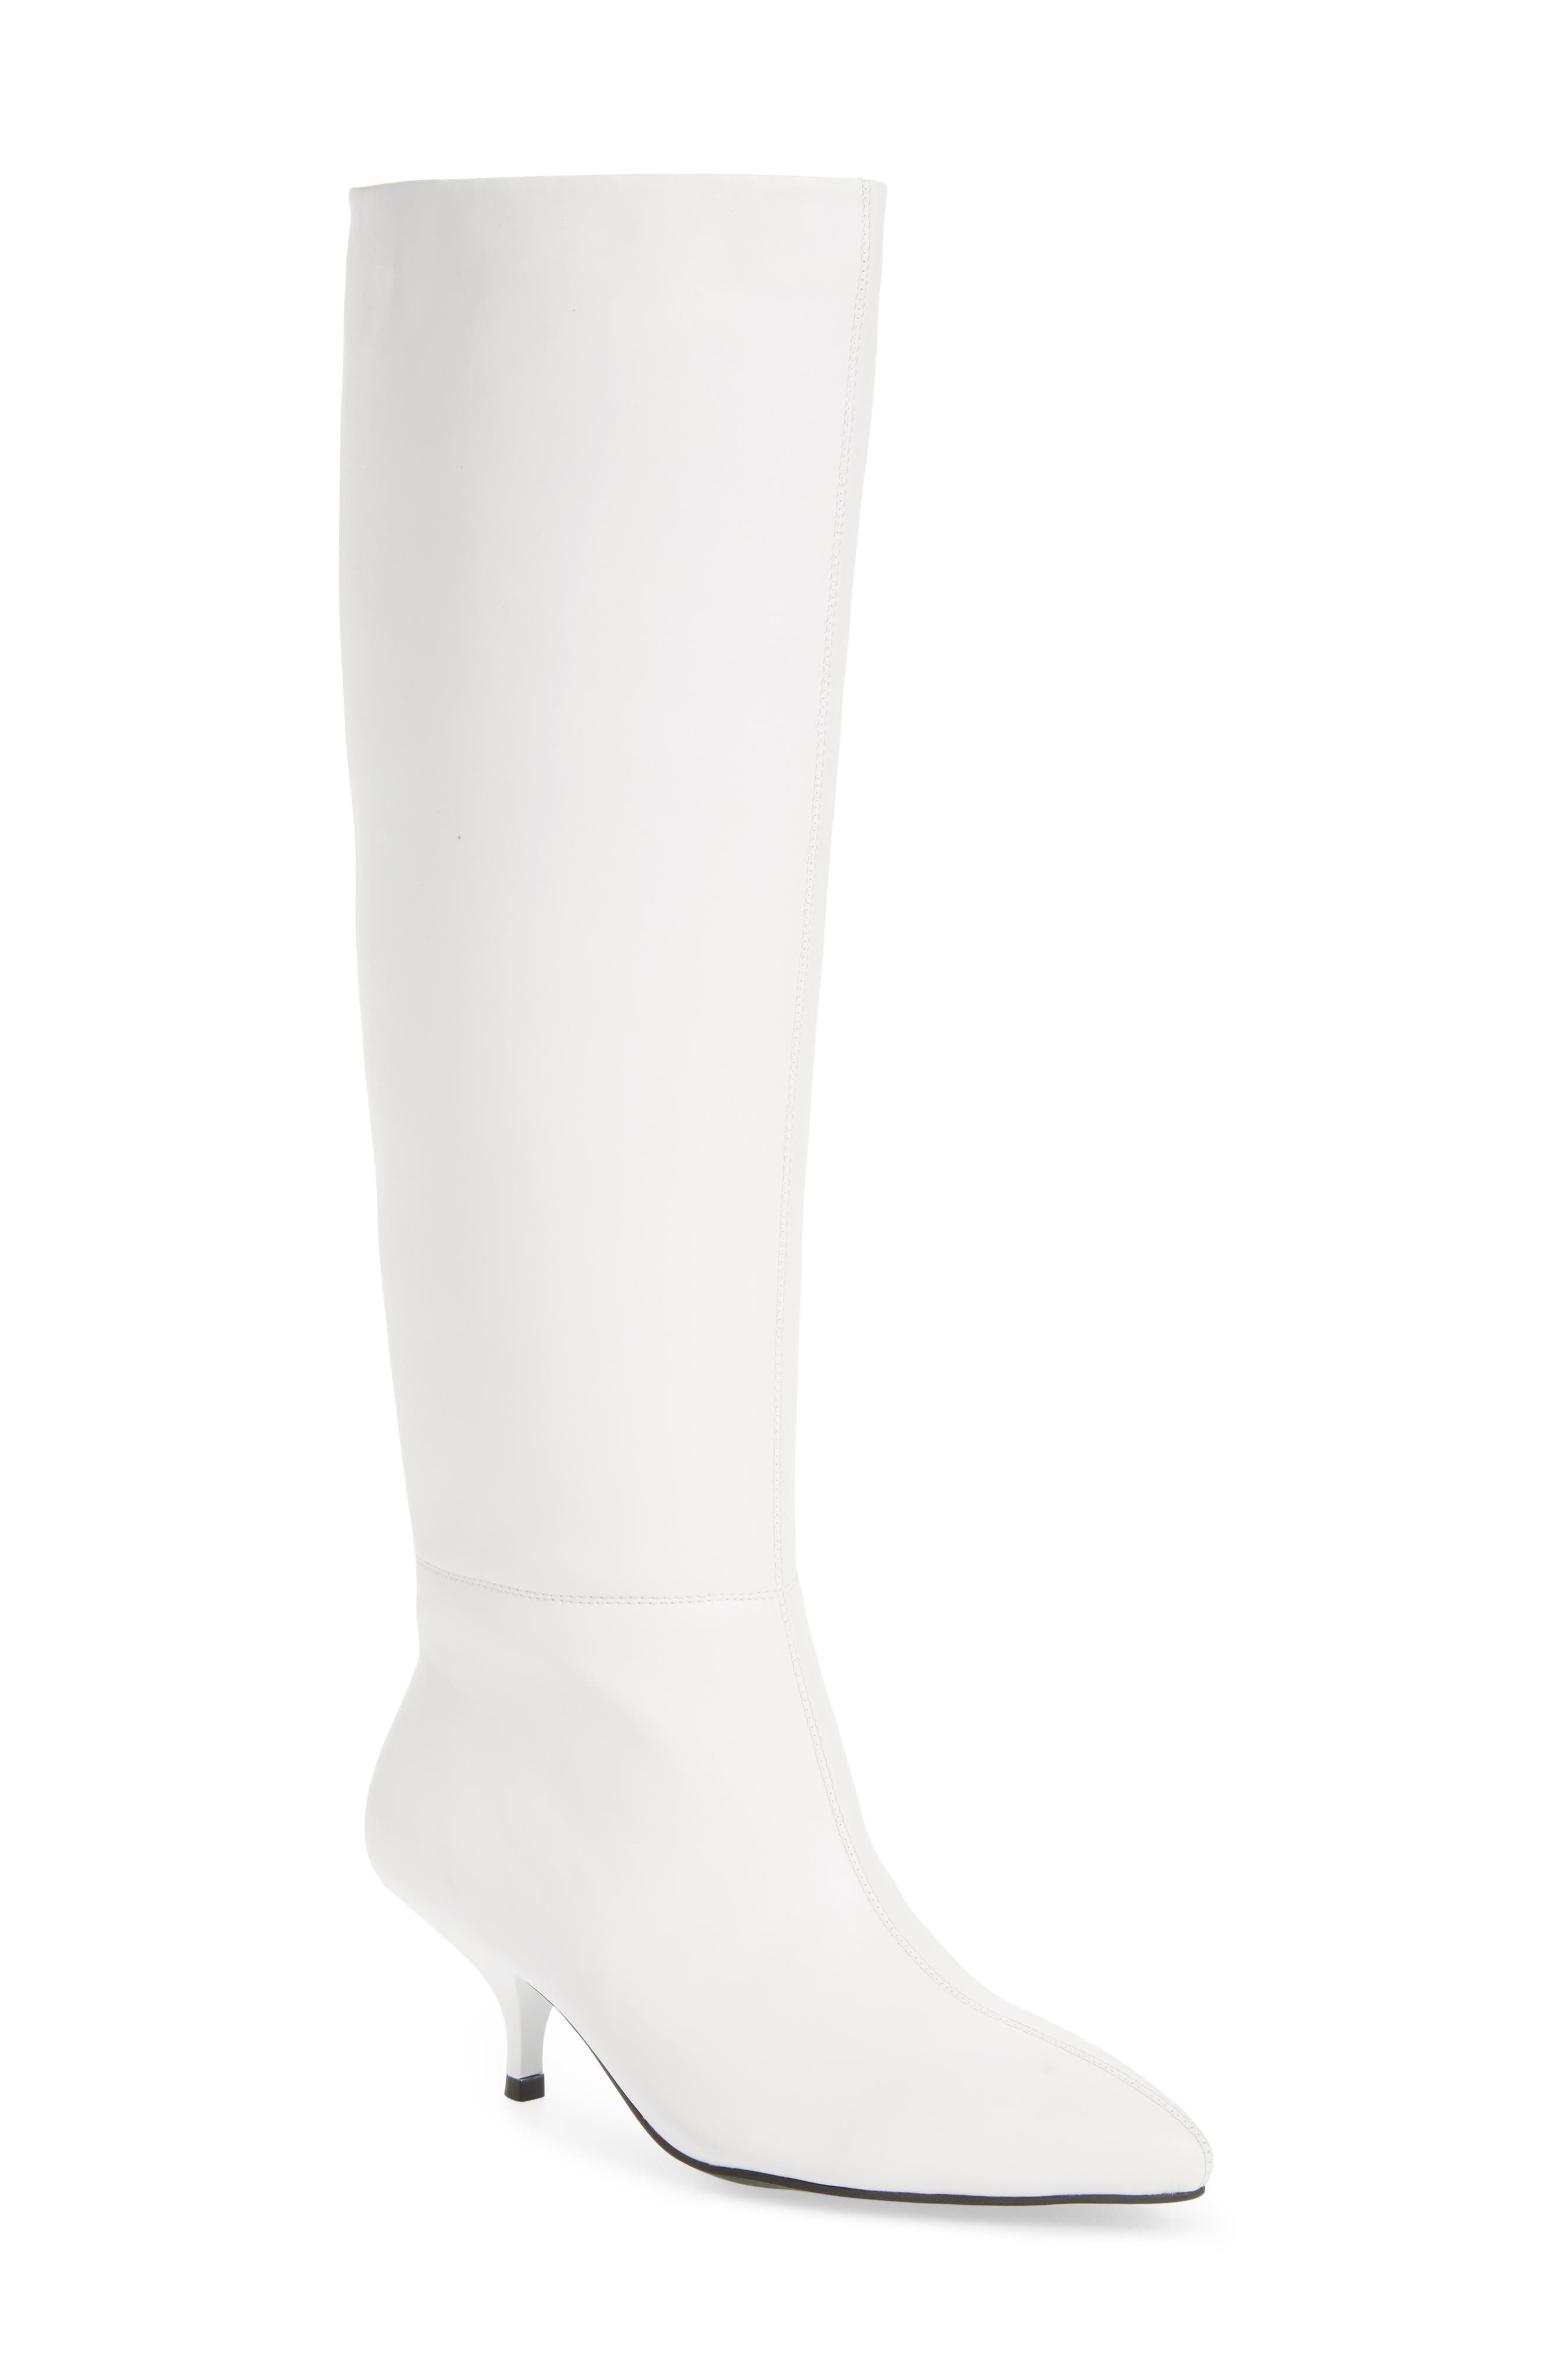 Germany Knee High Boot,                         Main,                         color, WHITE